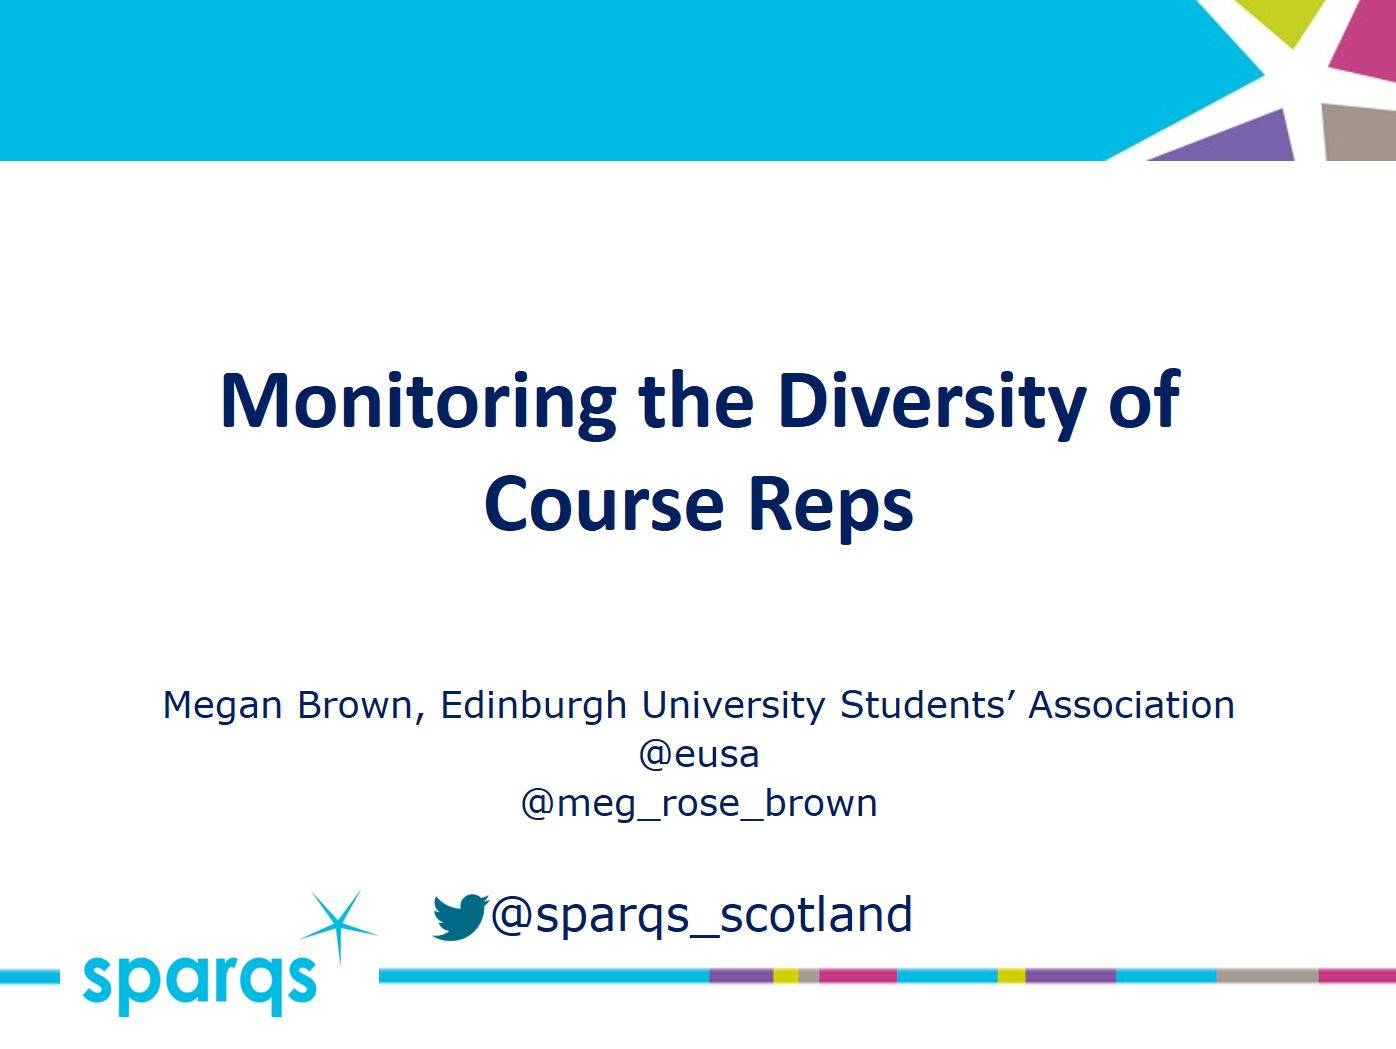 Monitoring the Diversity of Course Reps